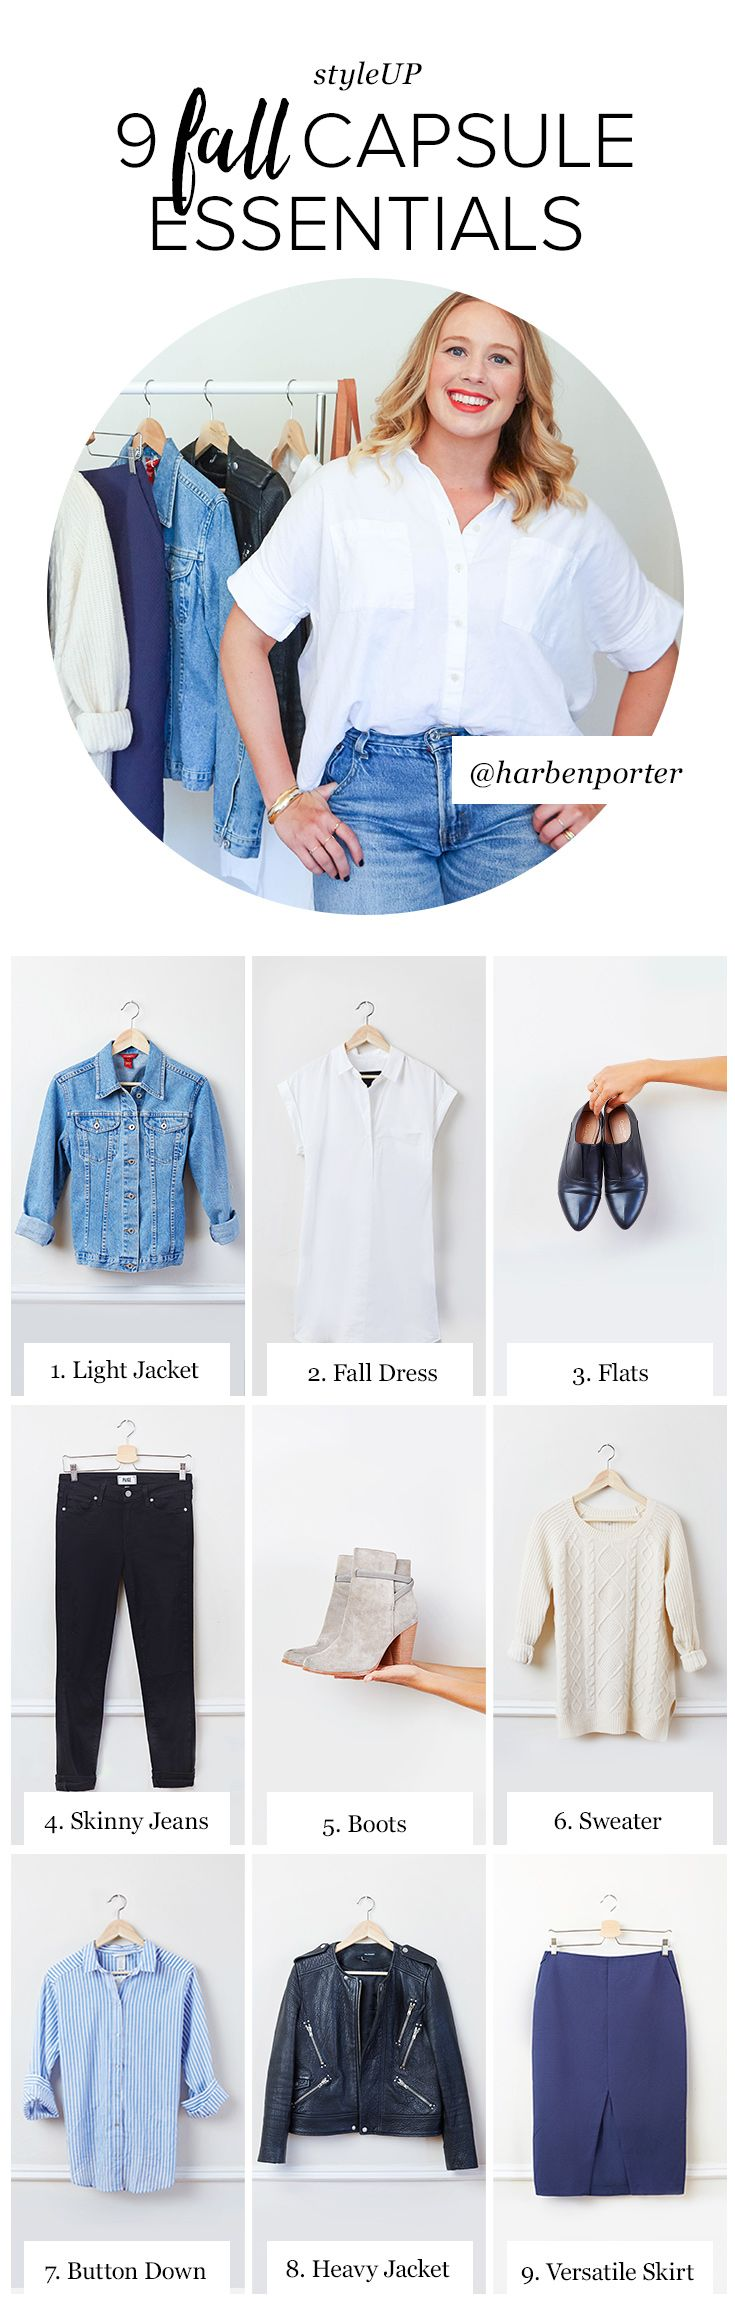 Just how far can one capsule wardrobe go? We put it to the test. 9 fall essentials. 9 ways. And we're just getting started. At thredUP, you'll find high-quality secondhand clothes from brands like Madewell, Anthropologie, Ann Taylor, and more at up to 90% off. That means you can build your dream closet without going over budget. So, what are you shopping for this fall? Sign up and start shopping today!